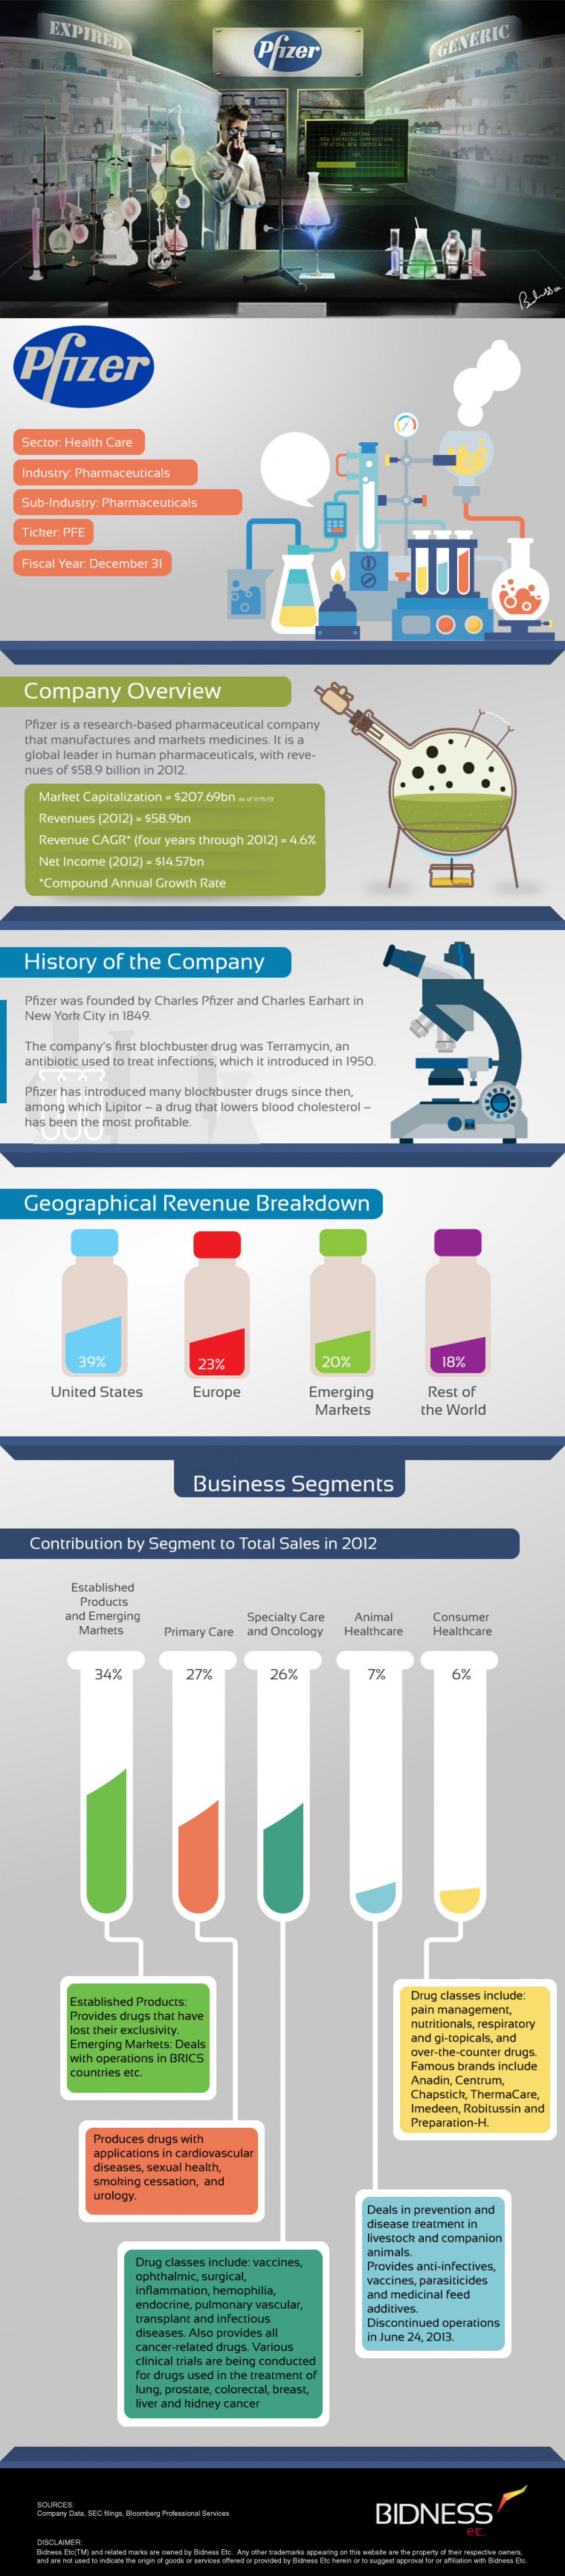 Pfizer (PFE) Company Description Infographic